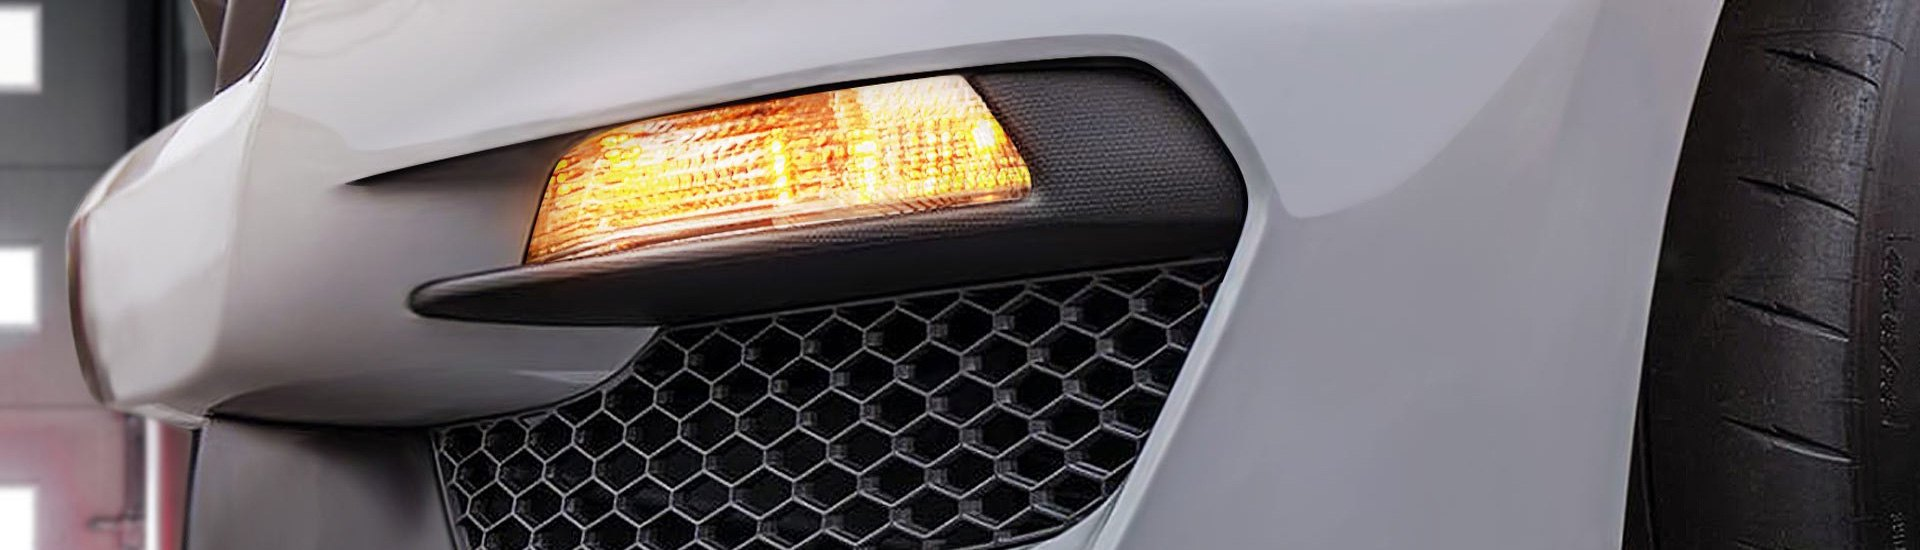 Custom Signal Lamps Complete Your Exterior Lighting Makeover